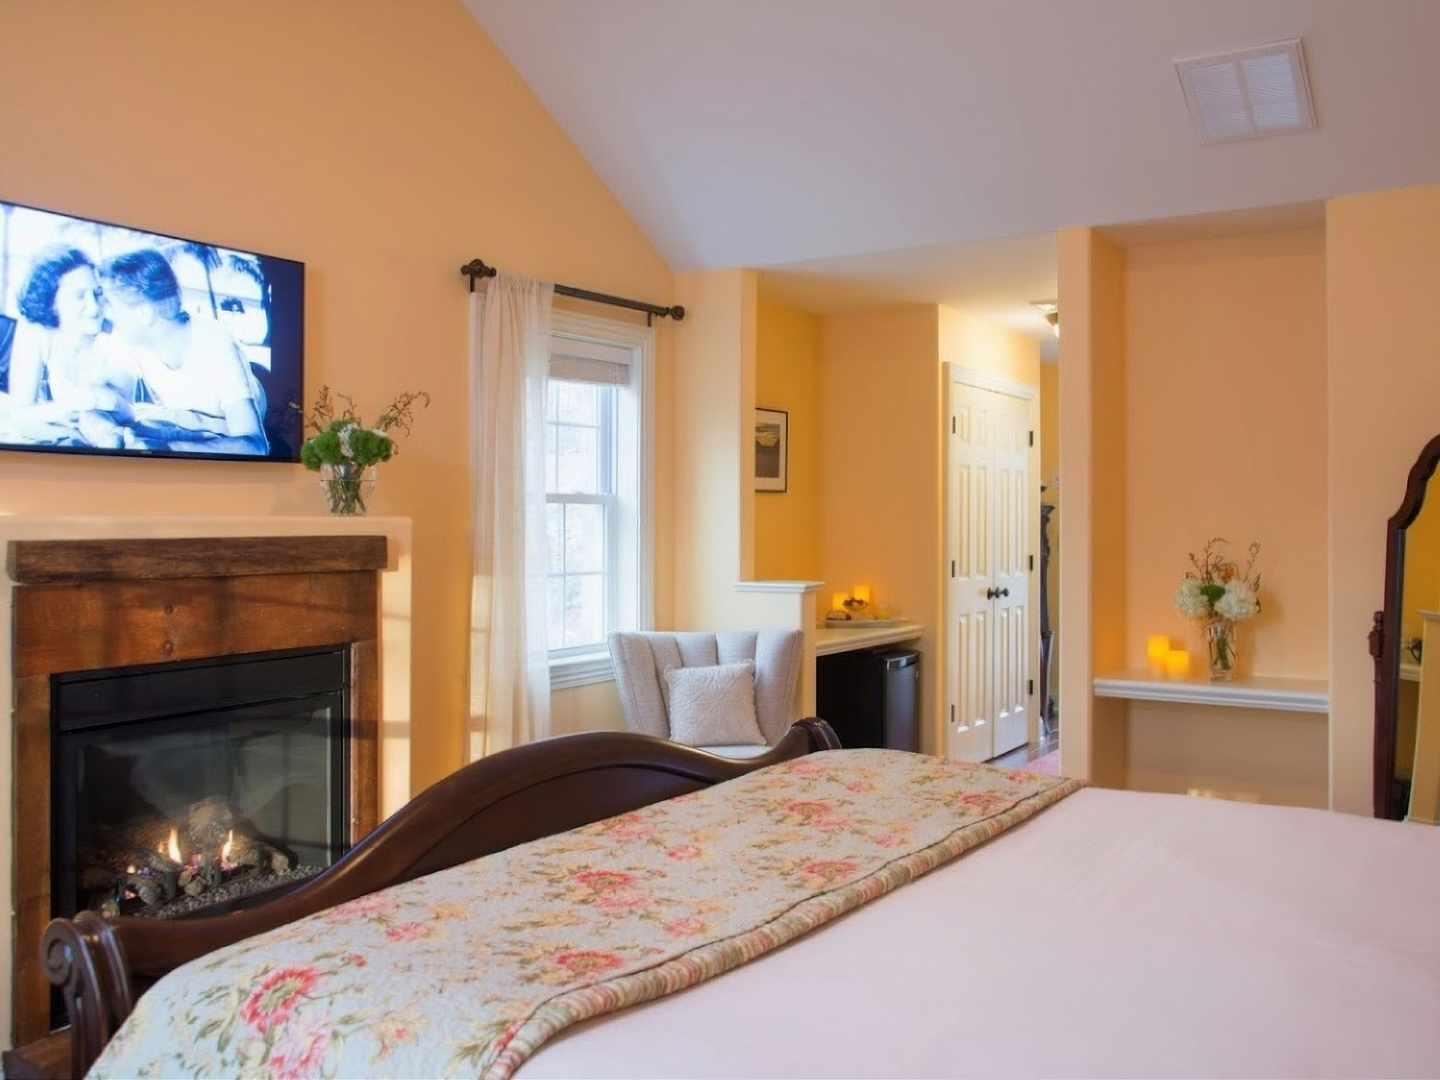 A living room with a flat screen tv sitting on top of a bed at Caldwell House Bed & Breakfast.